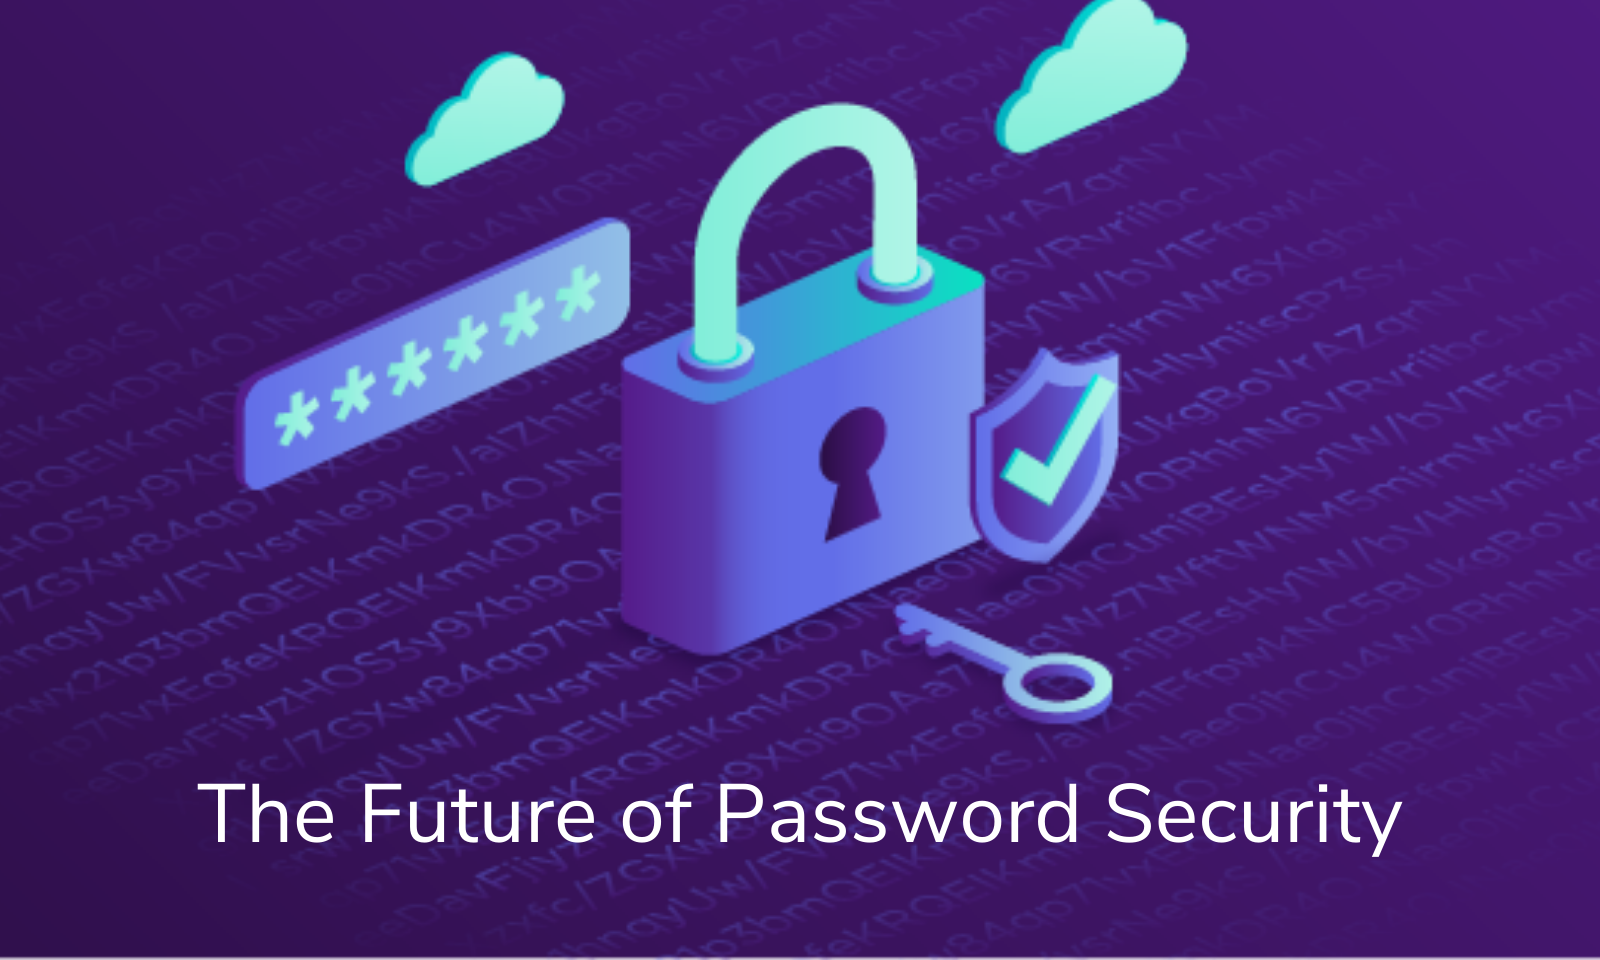 The Future of Password Security